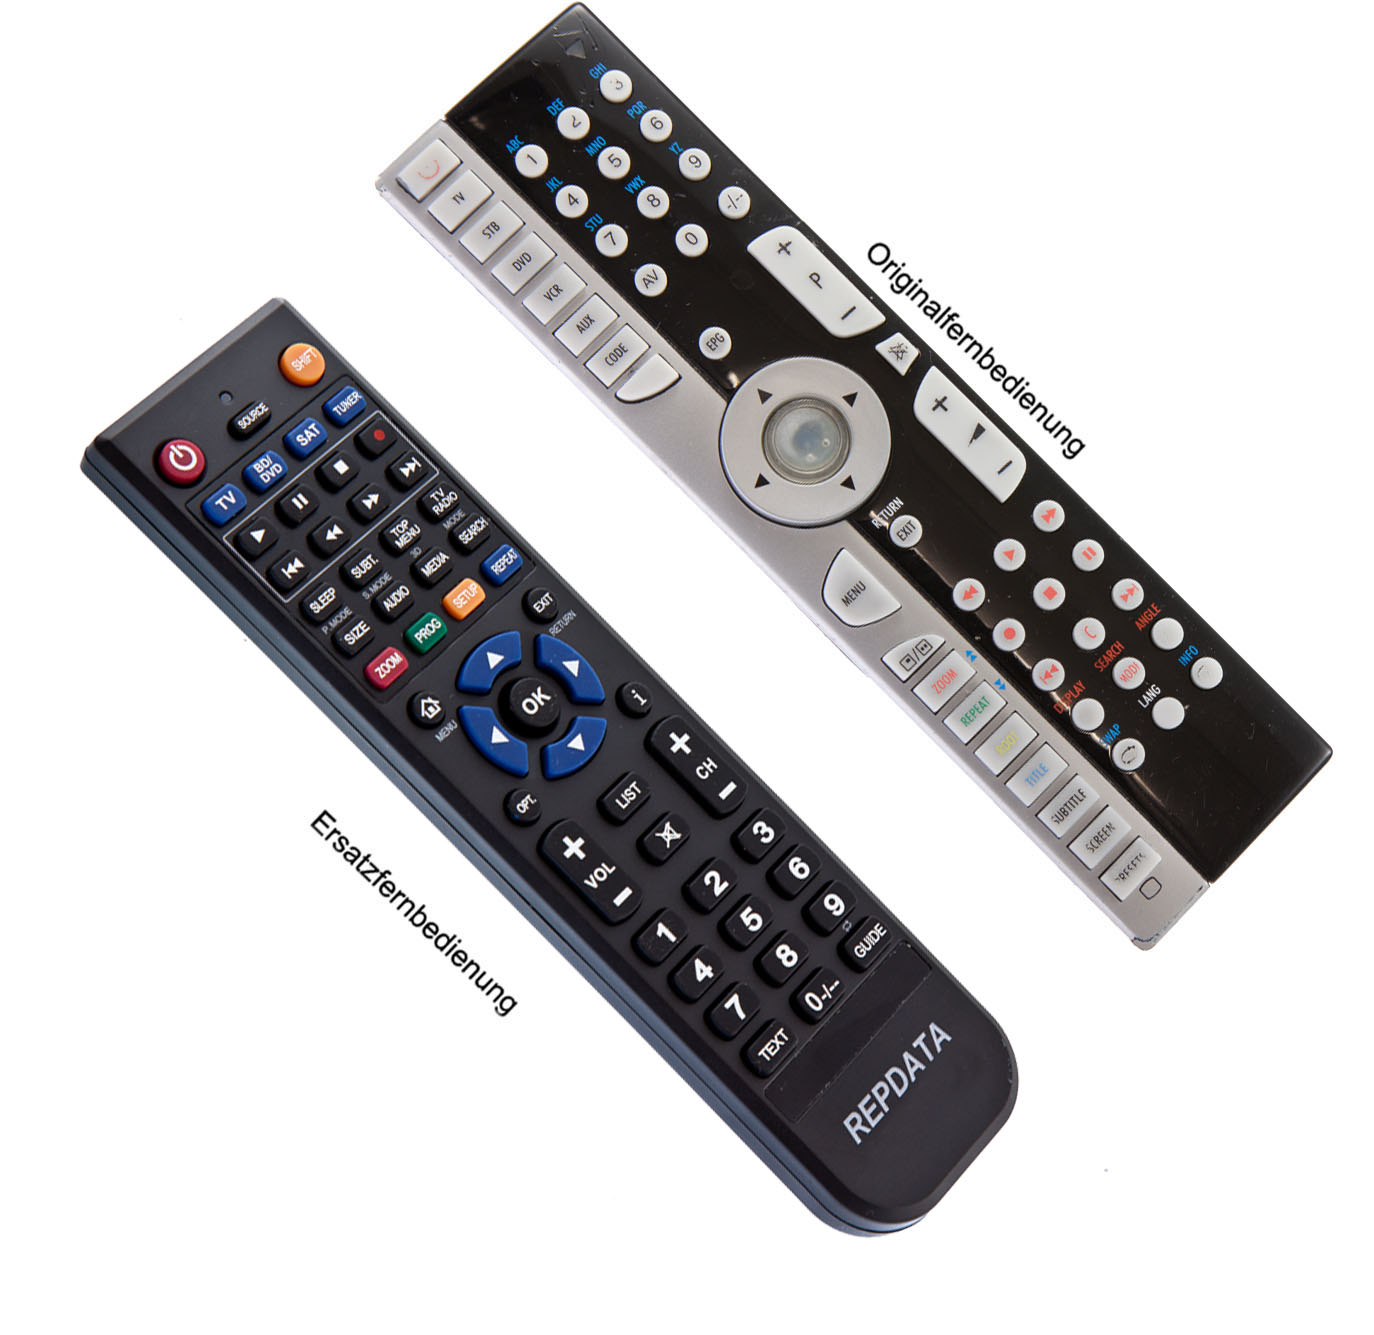 tevion remote control instructions